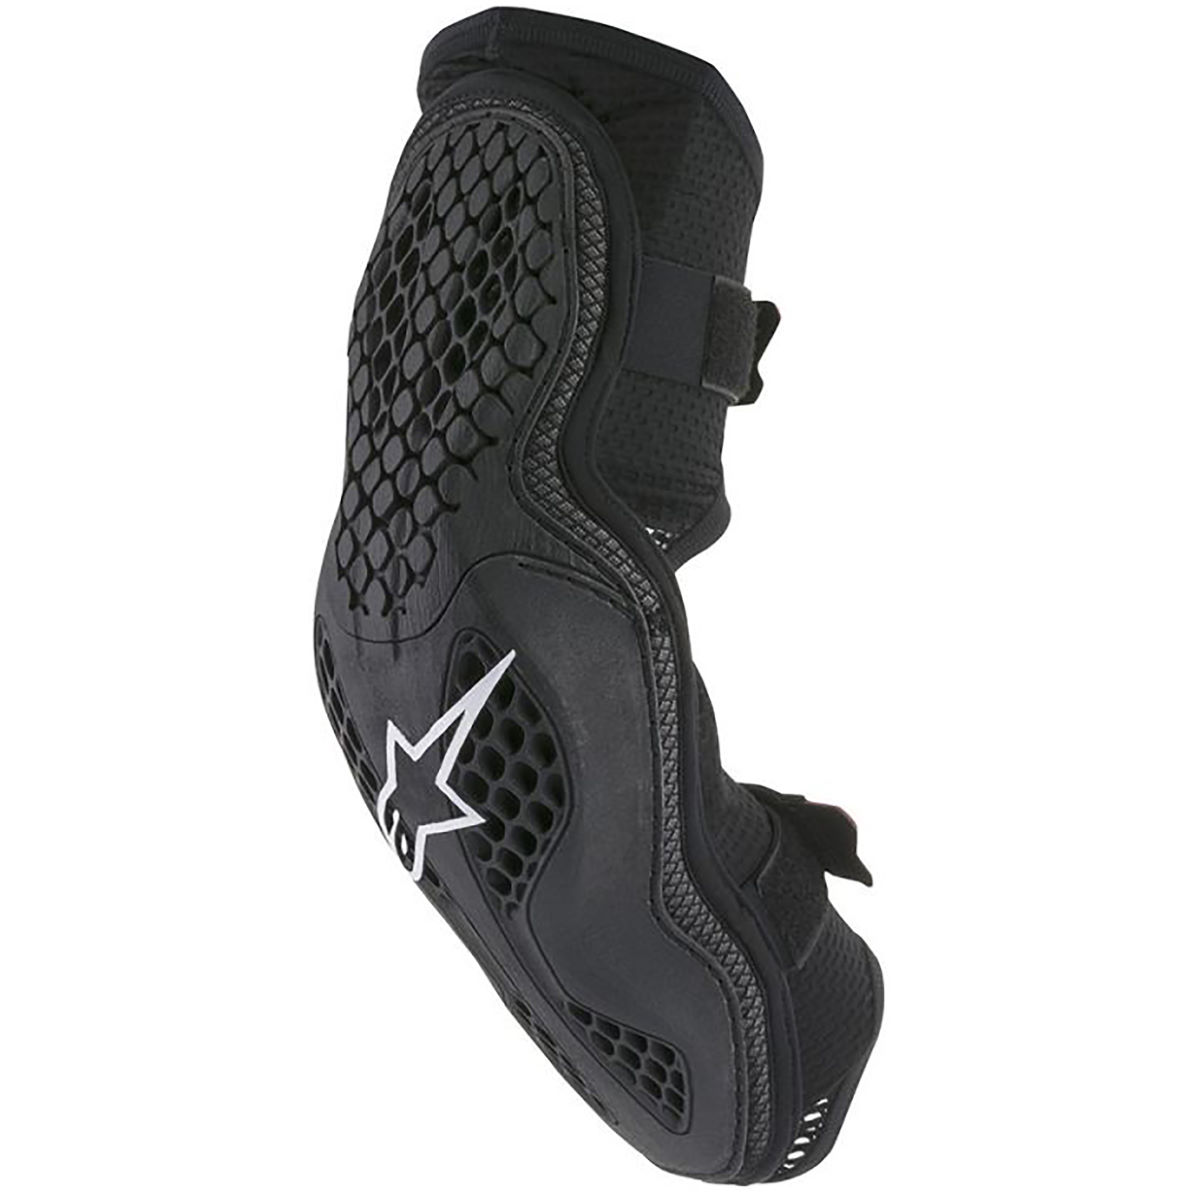 Alpinestars Sequence Elbow Protector - Coderas